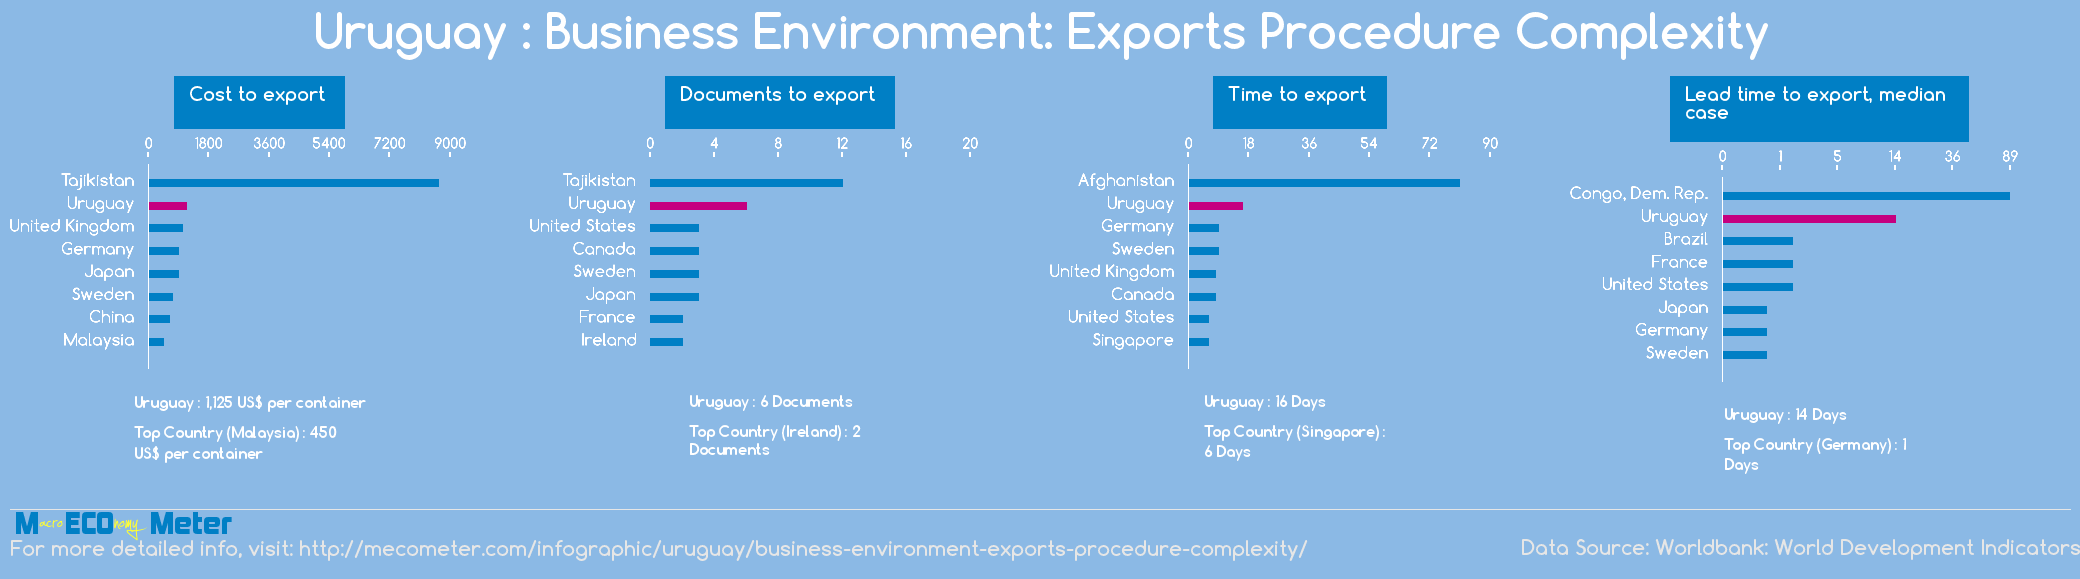 Uruguay : Business Environment: Exports Procedure Complexity